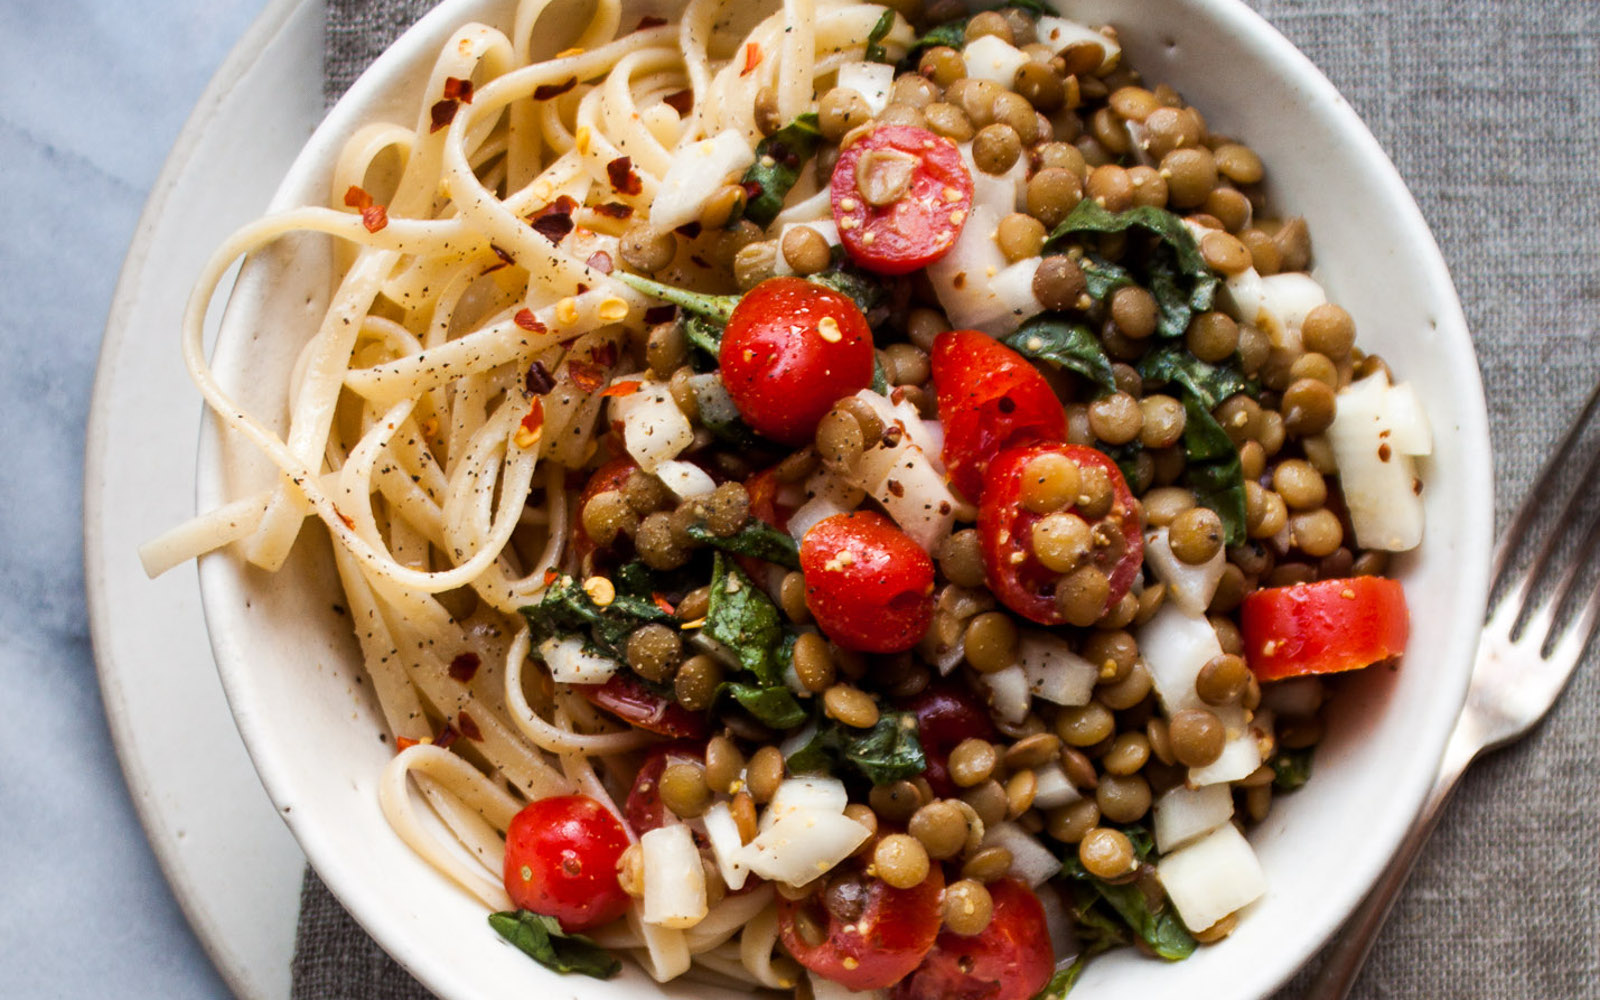 Tomato and Lentil Salad Over Pasta